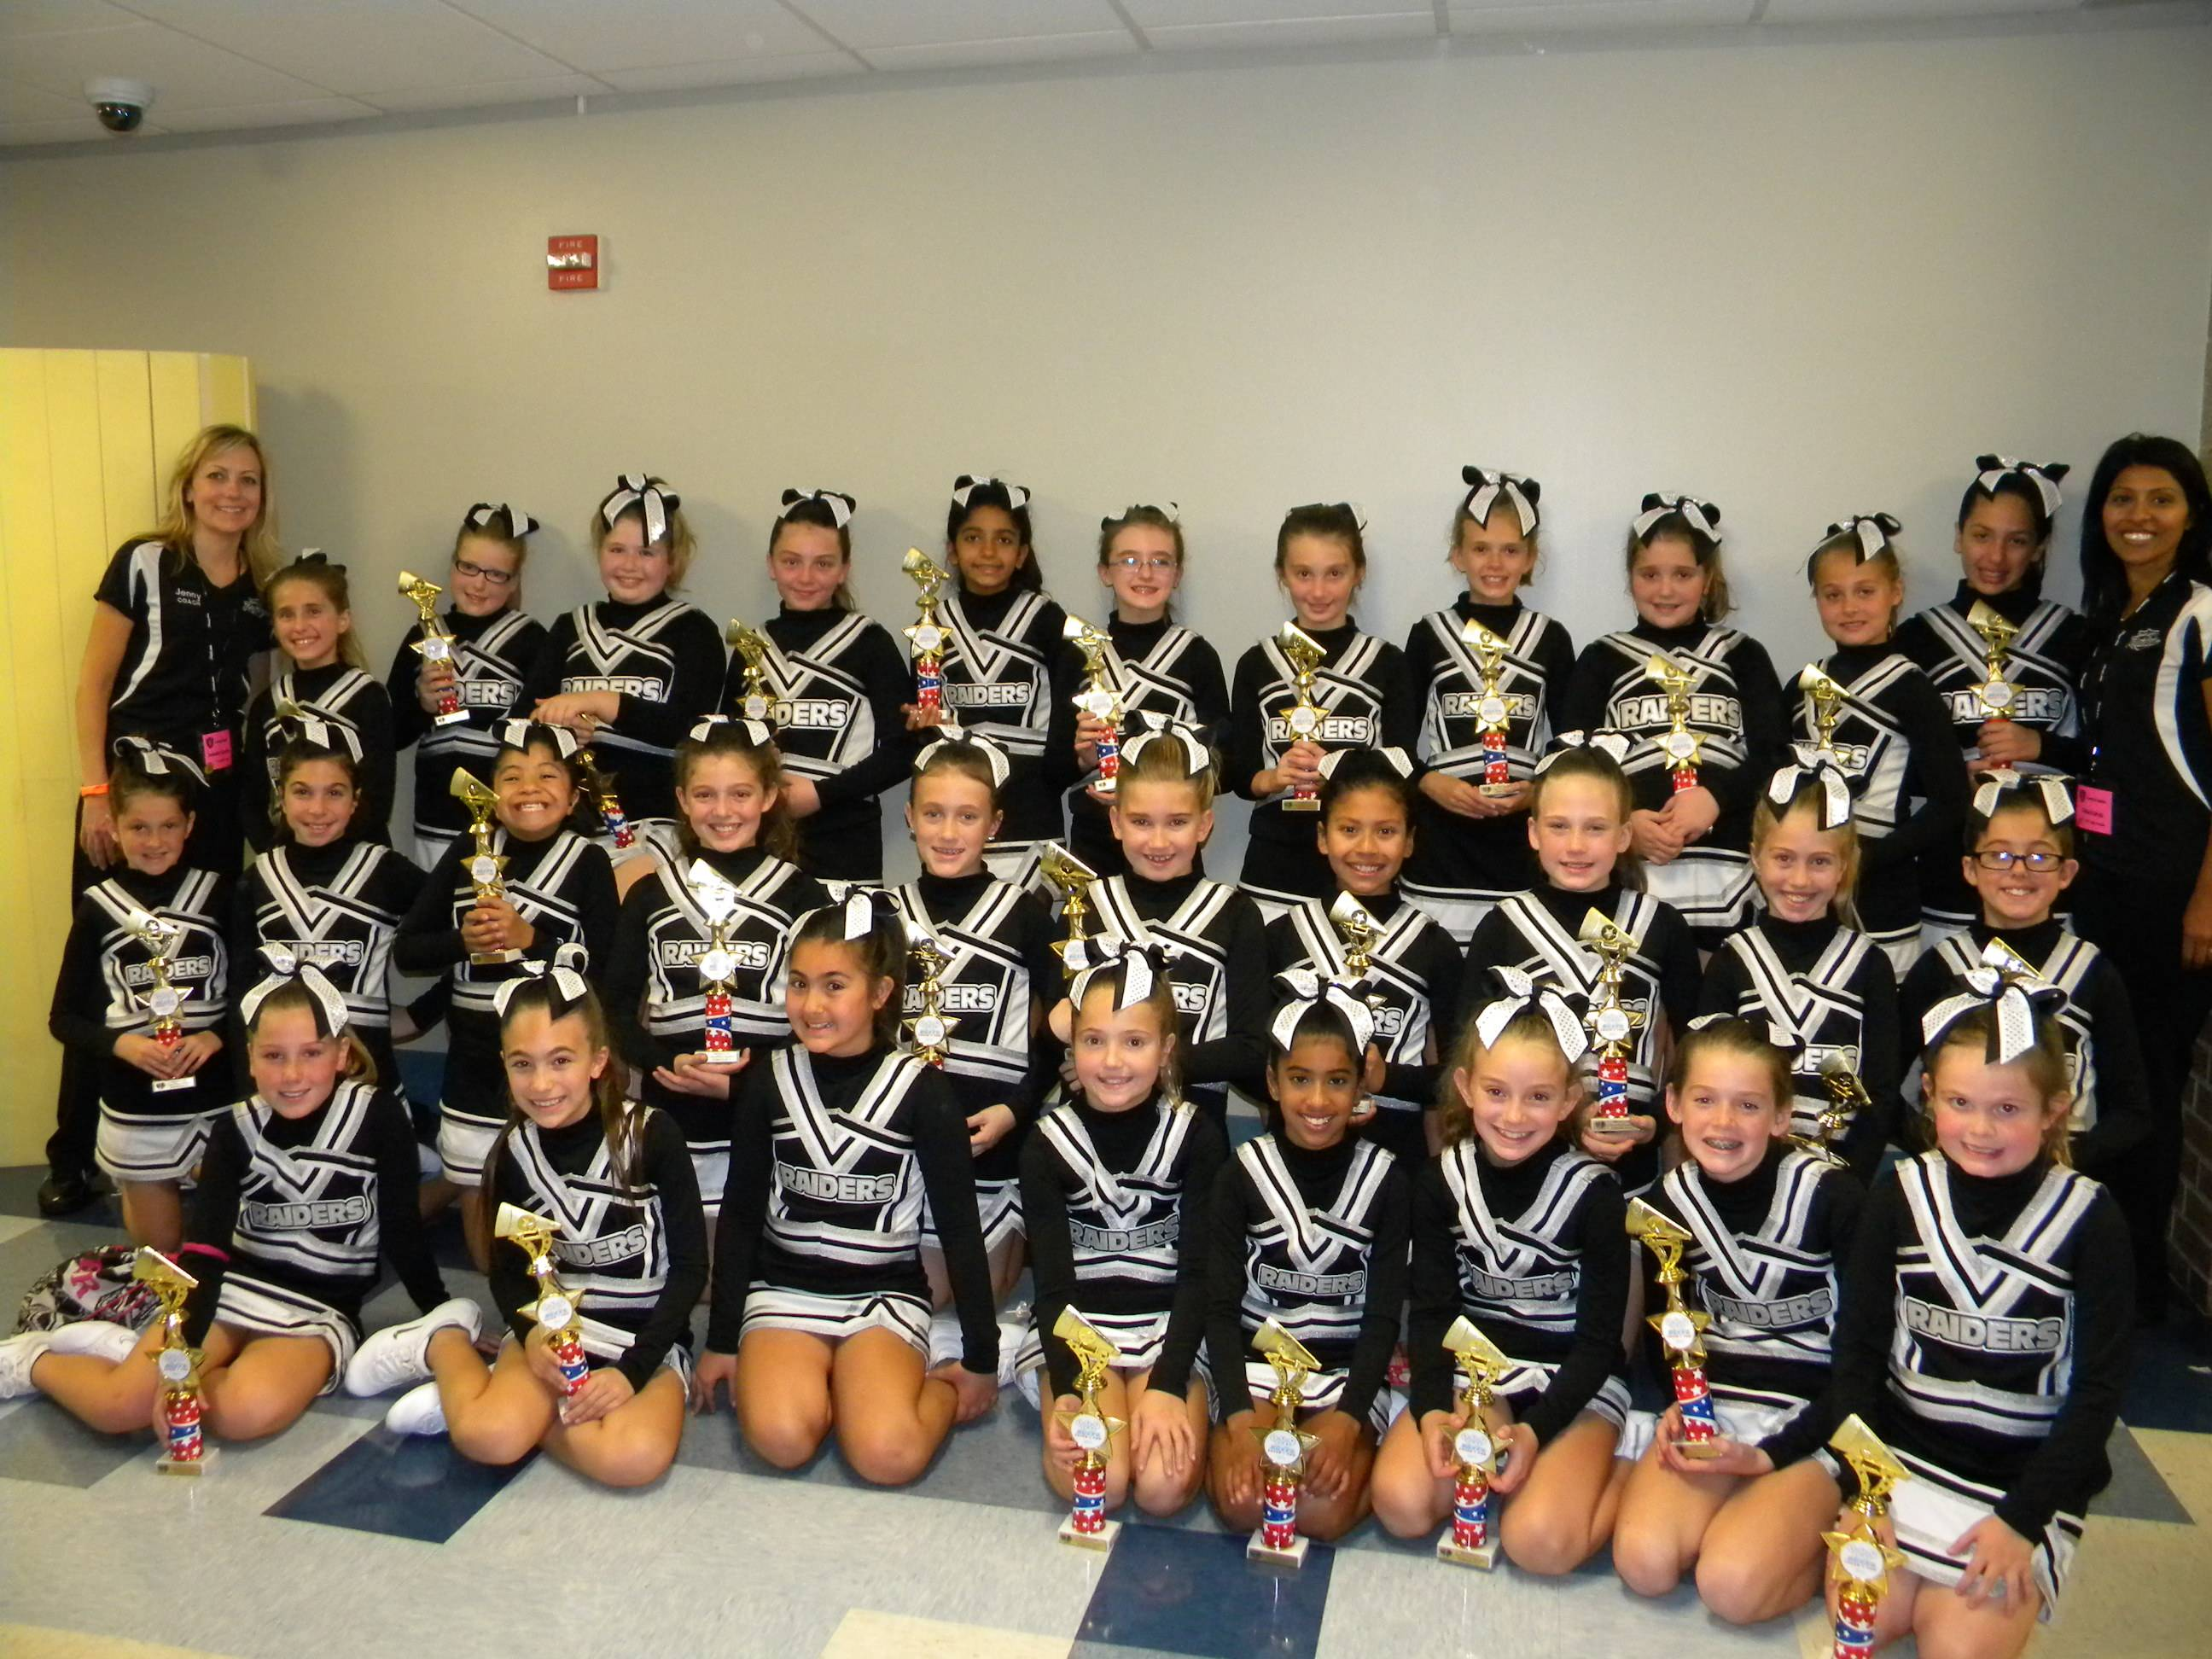 5th Grade Bartlett Raiders Cheer Squad at the BGYFL Cheer Competition, Willowbrook High School, October 21, 2012